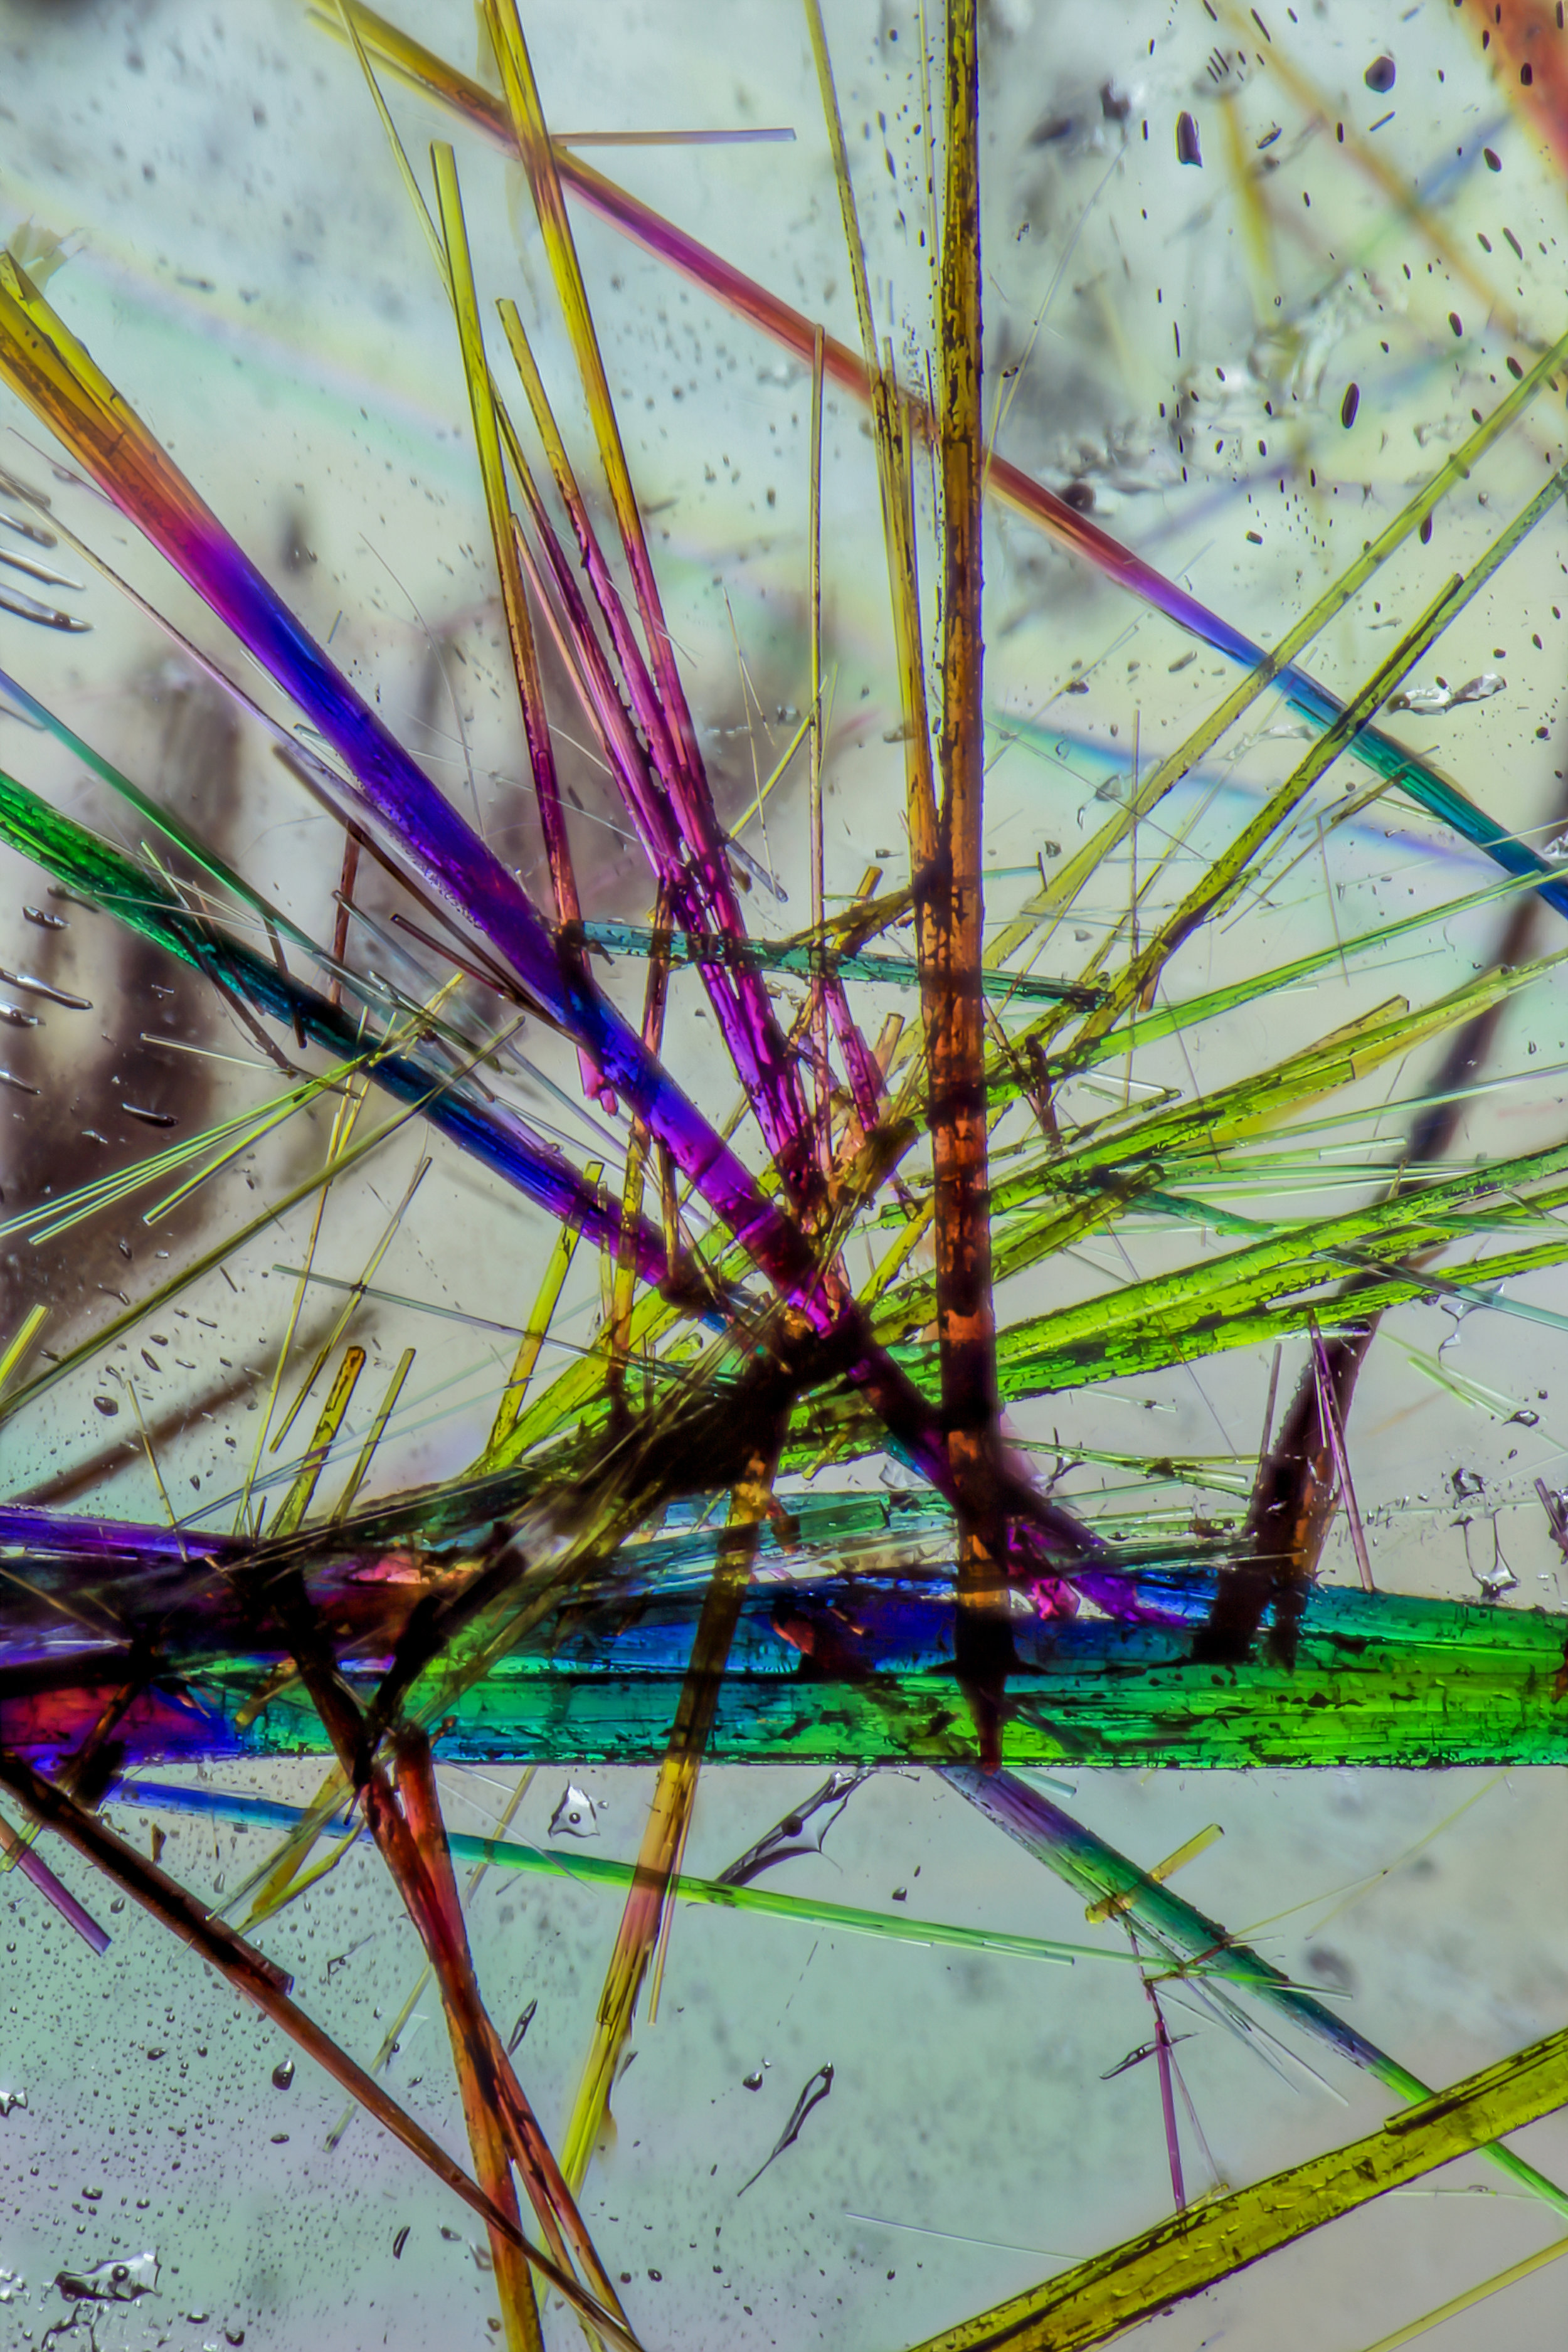 Numerous crystals of the mineral tourmaline are trapped in their rock crystal quartz host. Vibrant birefringent colors are seen using polarized light. The vertical field of view is 4.32mm.© Nathan Renfro